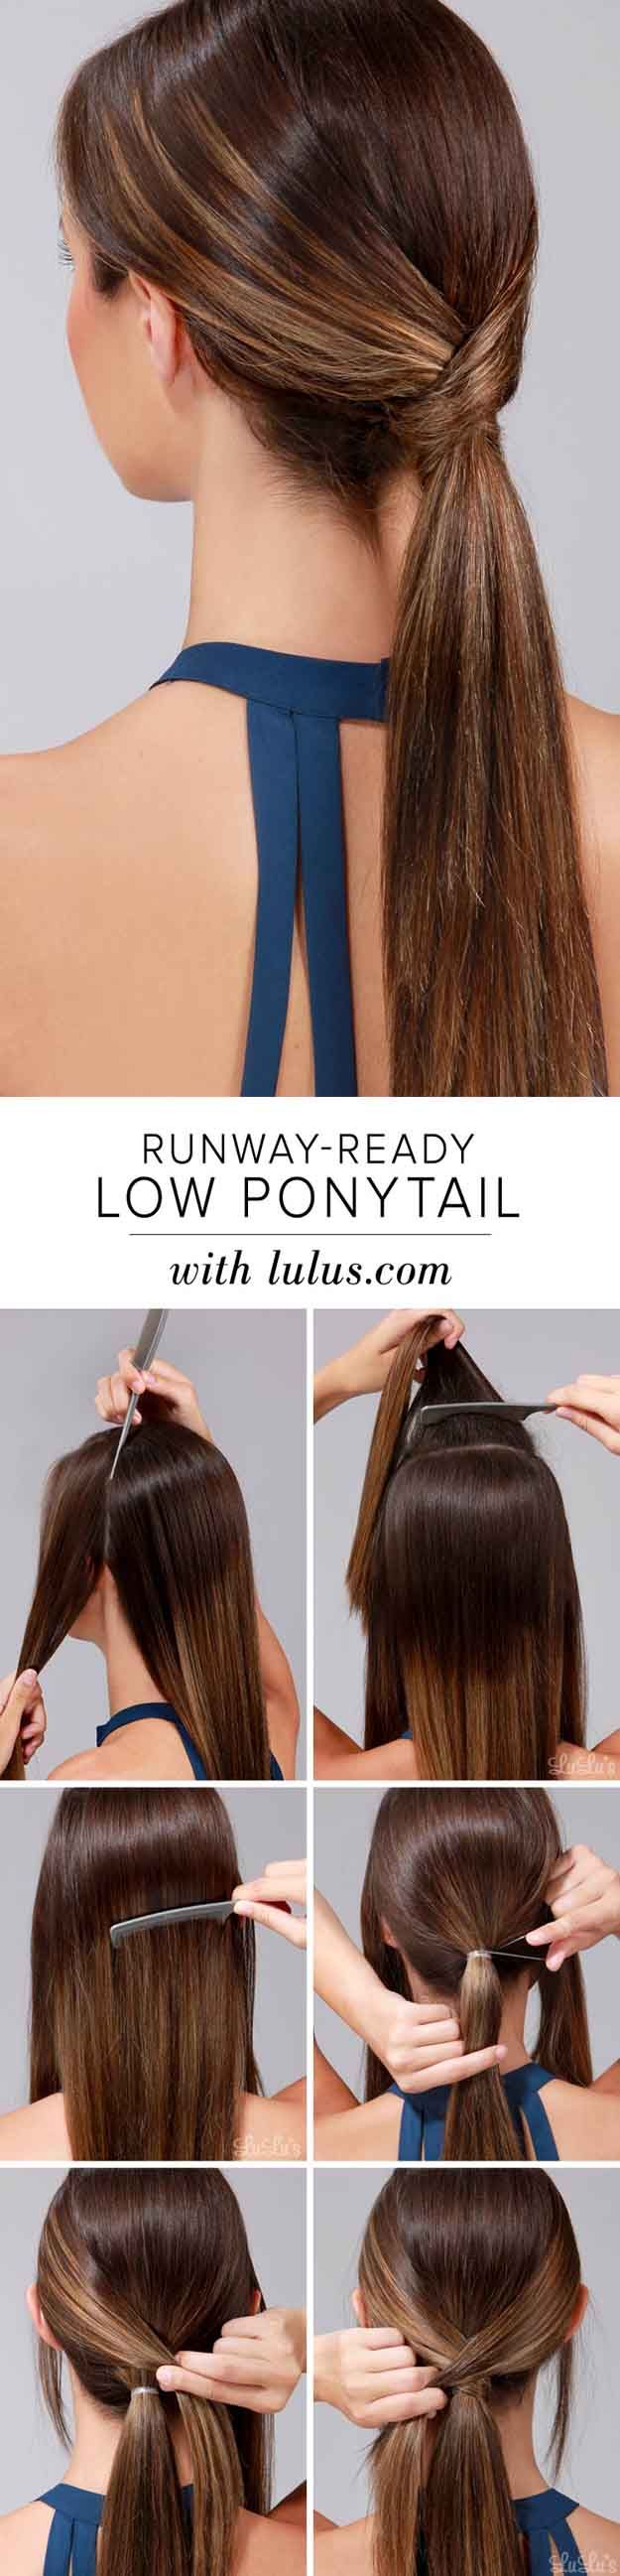 17 Best Ideas About Short Ponytail Hairstyles On Pinterest